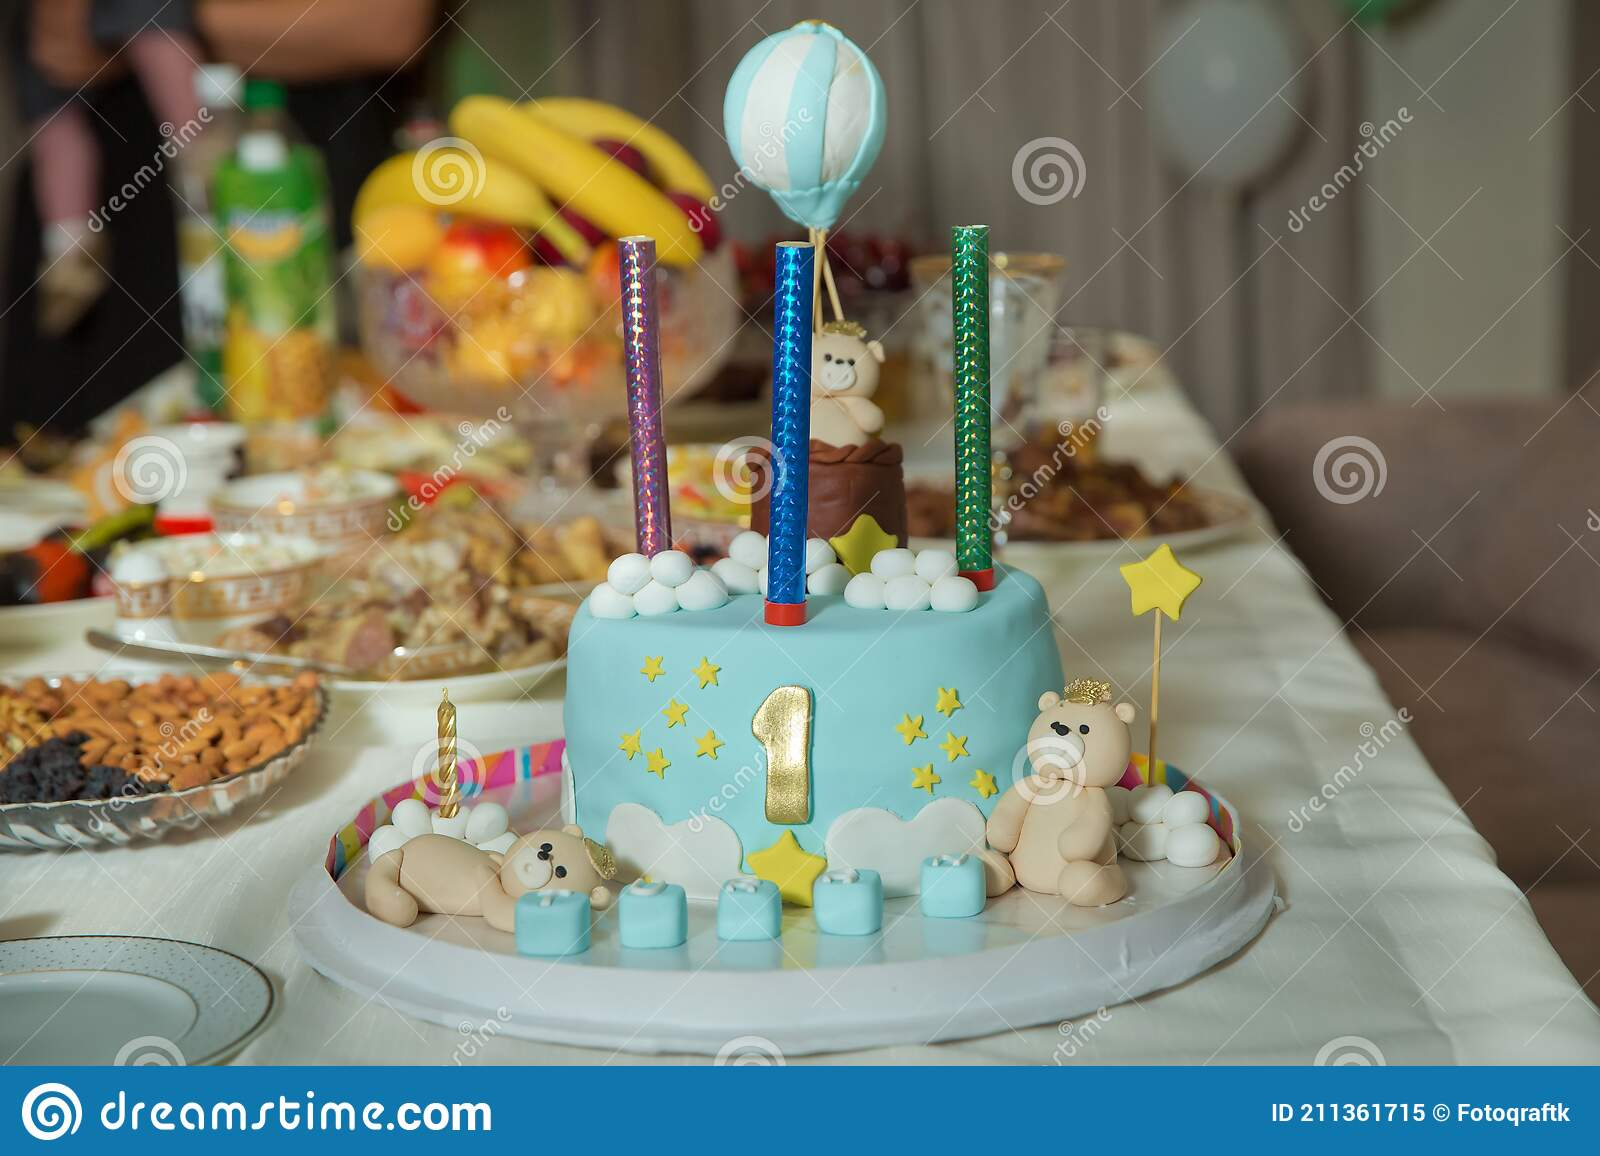 Baby Boy Bears Cake 1 Year Birthday Cake For A Blue Boy With A Number 1 Amazing Cake For Boy S First Birthday Blue And Whit Editorial Image Image Of Cupcake Celebration 211361715